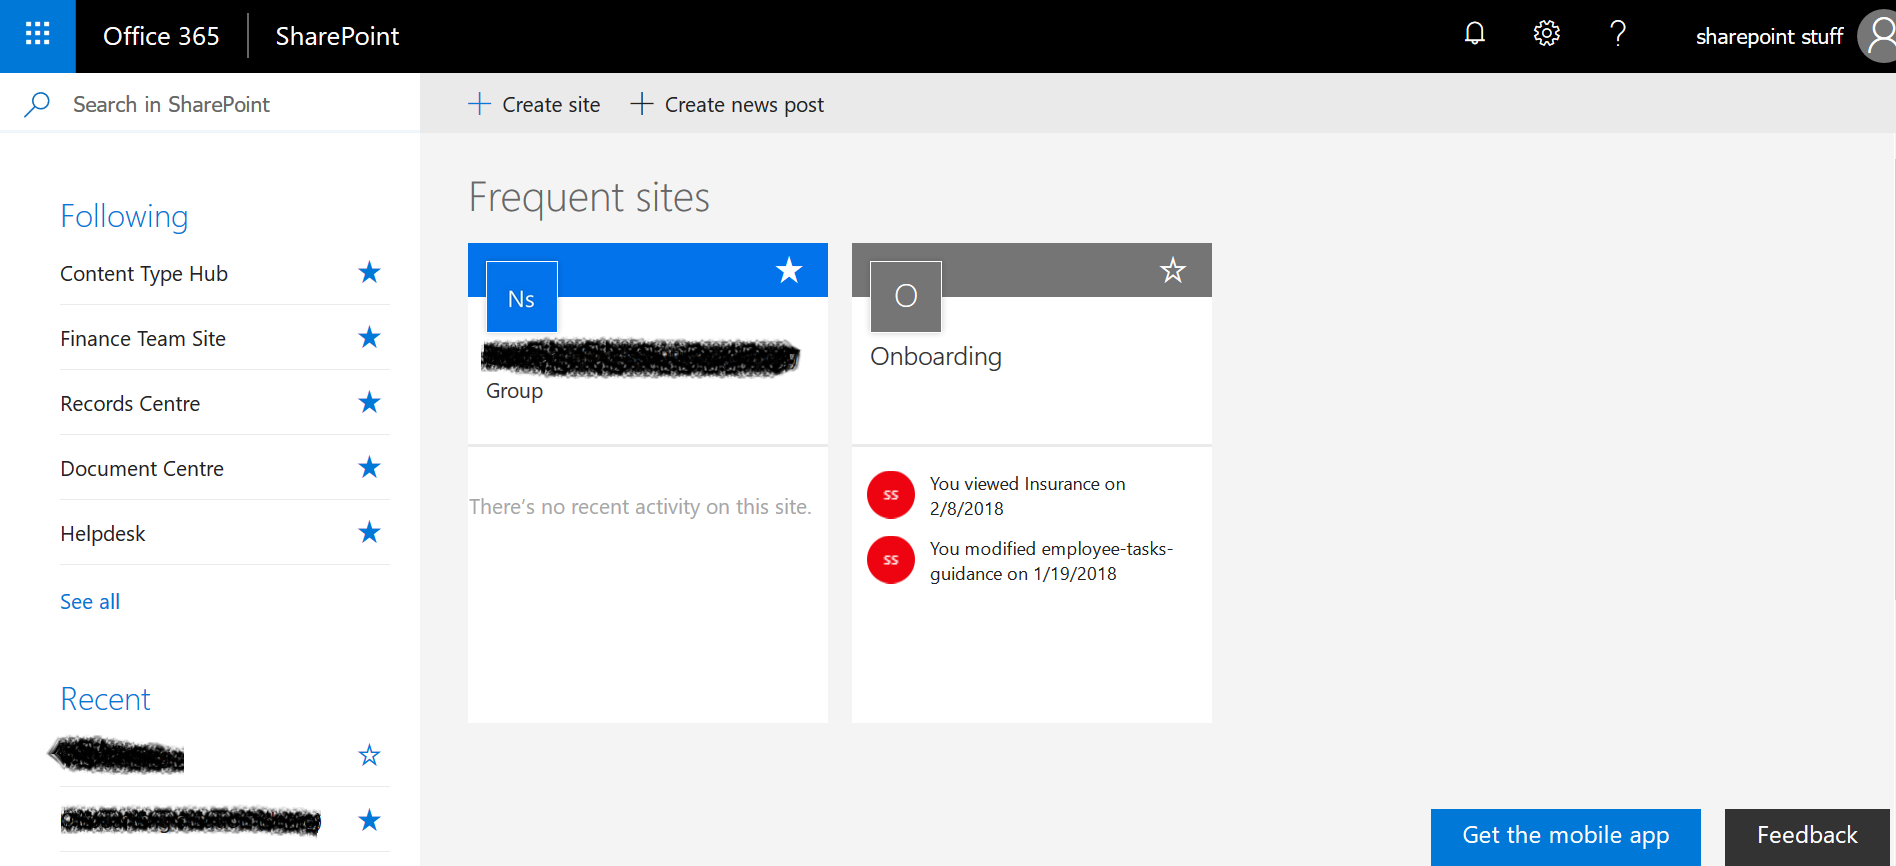 Get a list of all SharePoint sites without PowerShell – SharePoint Stuff